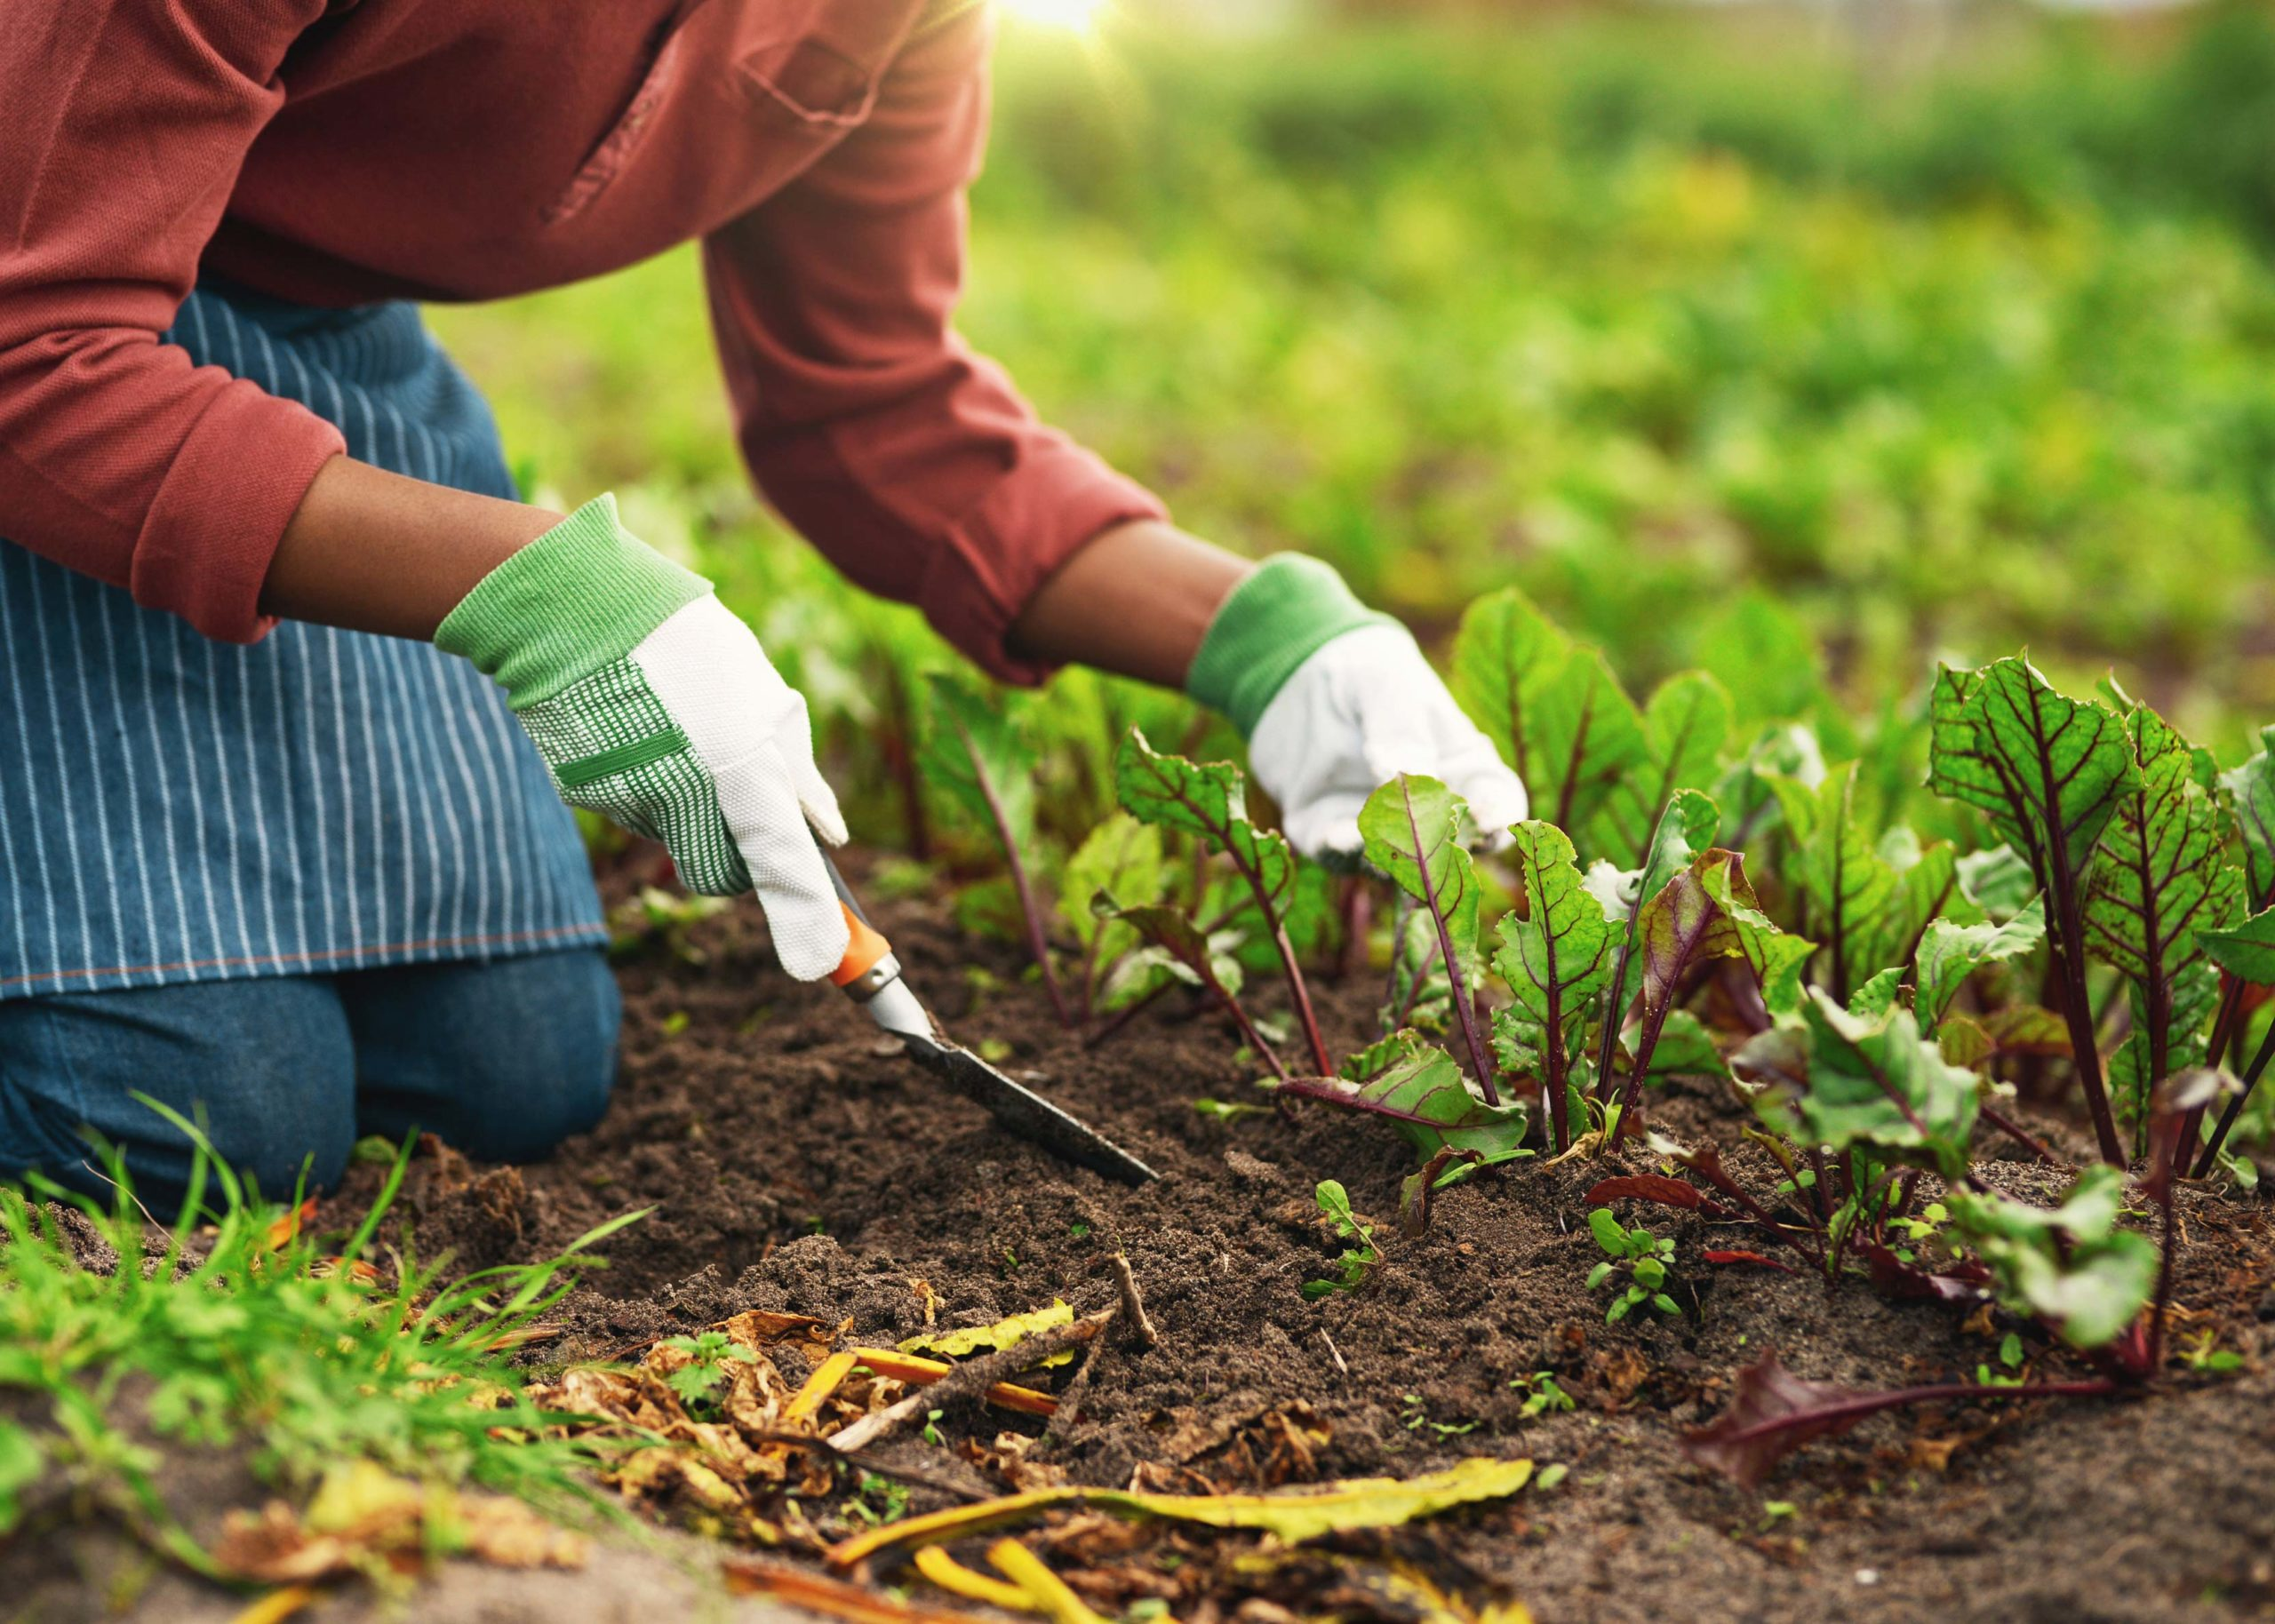 Woman of color prepping vegetables in the soil